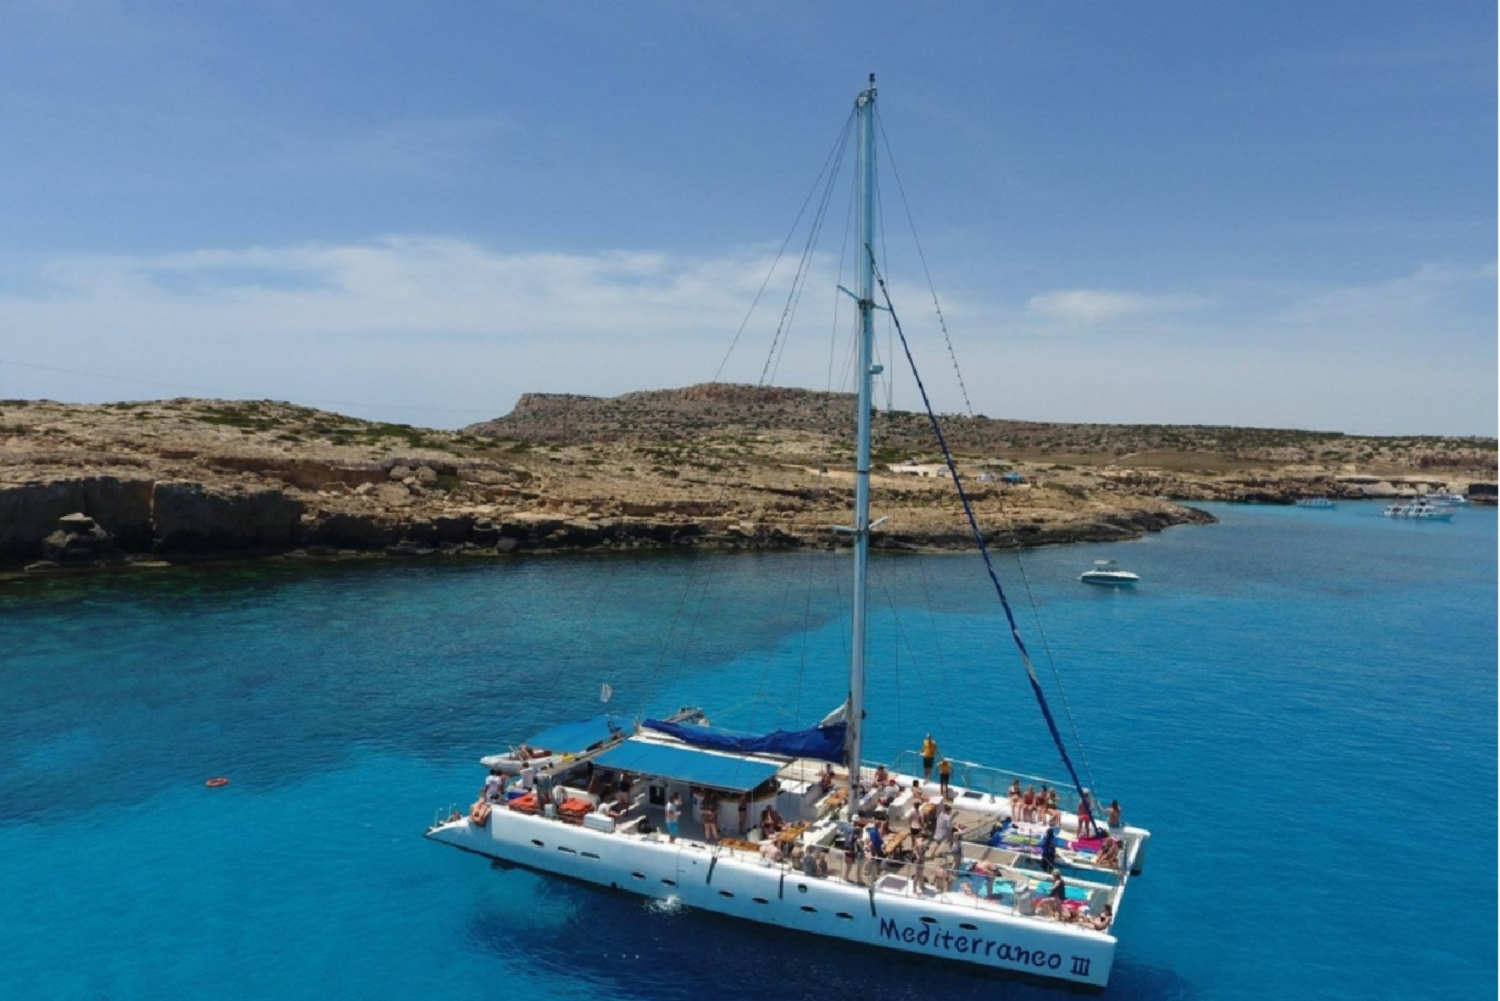 Ayia Napa and Protaras: Full Day Catamaran Cruise